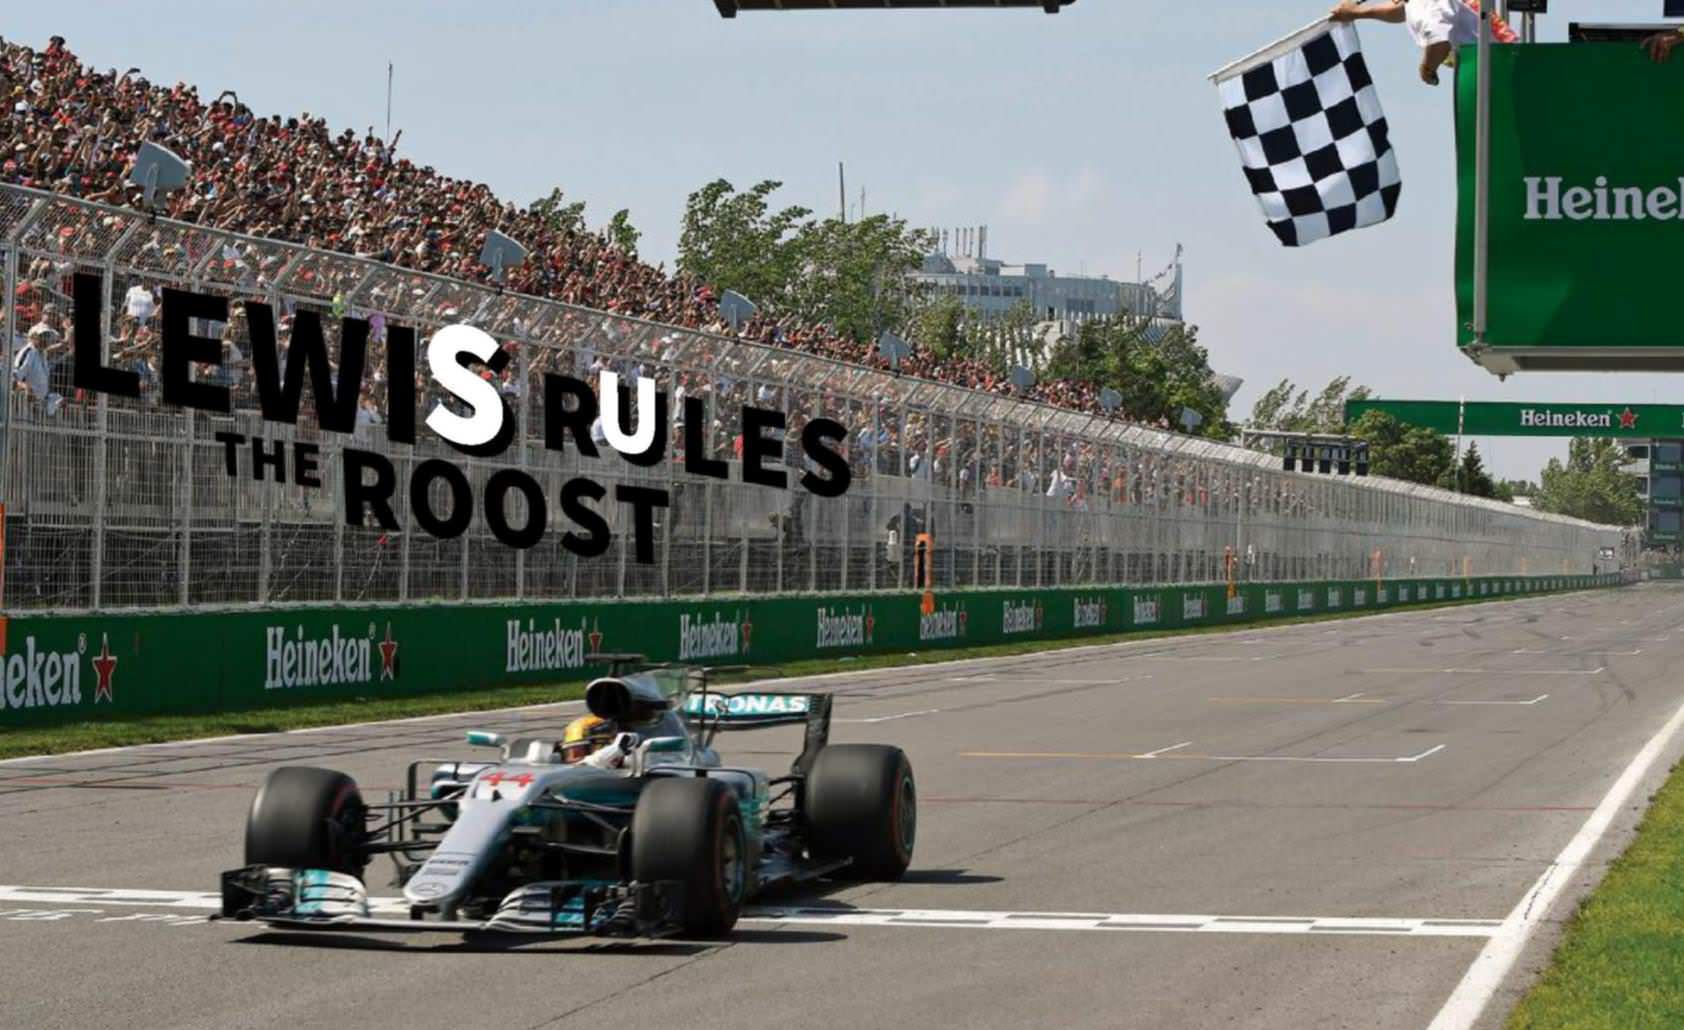 Lewis Rules The Roost